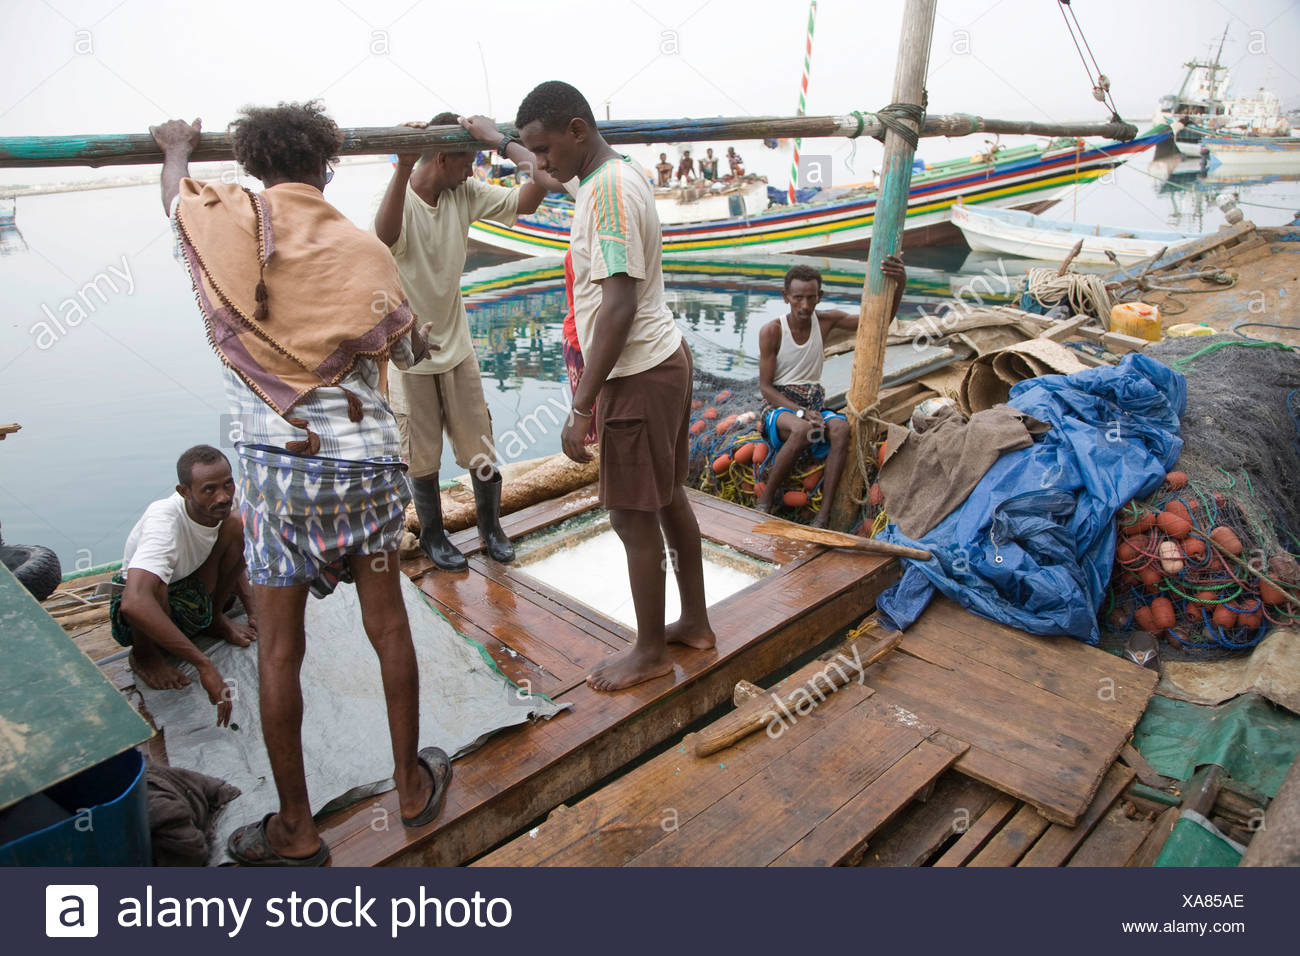 Workmen loading ice onto a boat in the fishing harbour, Massawa, Red Sea, Eritrea, Horn of Africa, East Africa - Stock Image